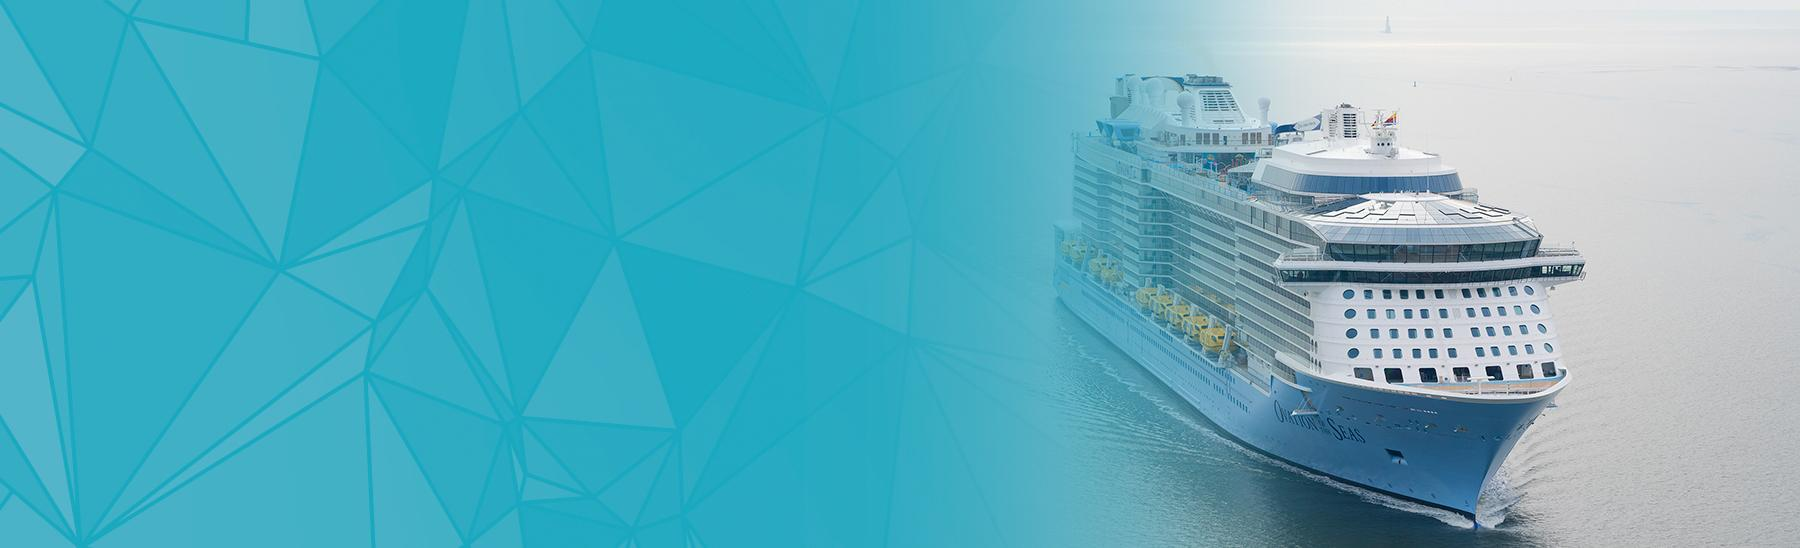 Key-Visual Seatrade Cruise Global 2020